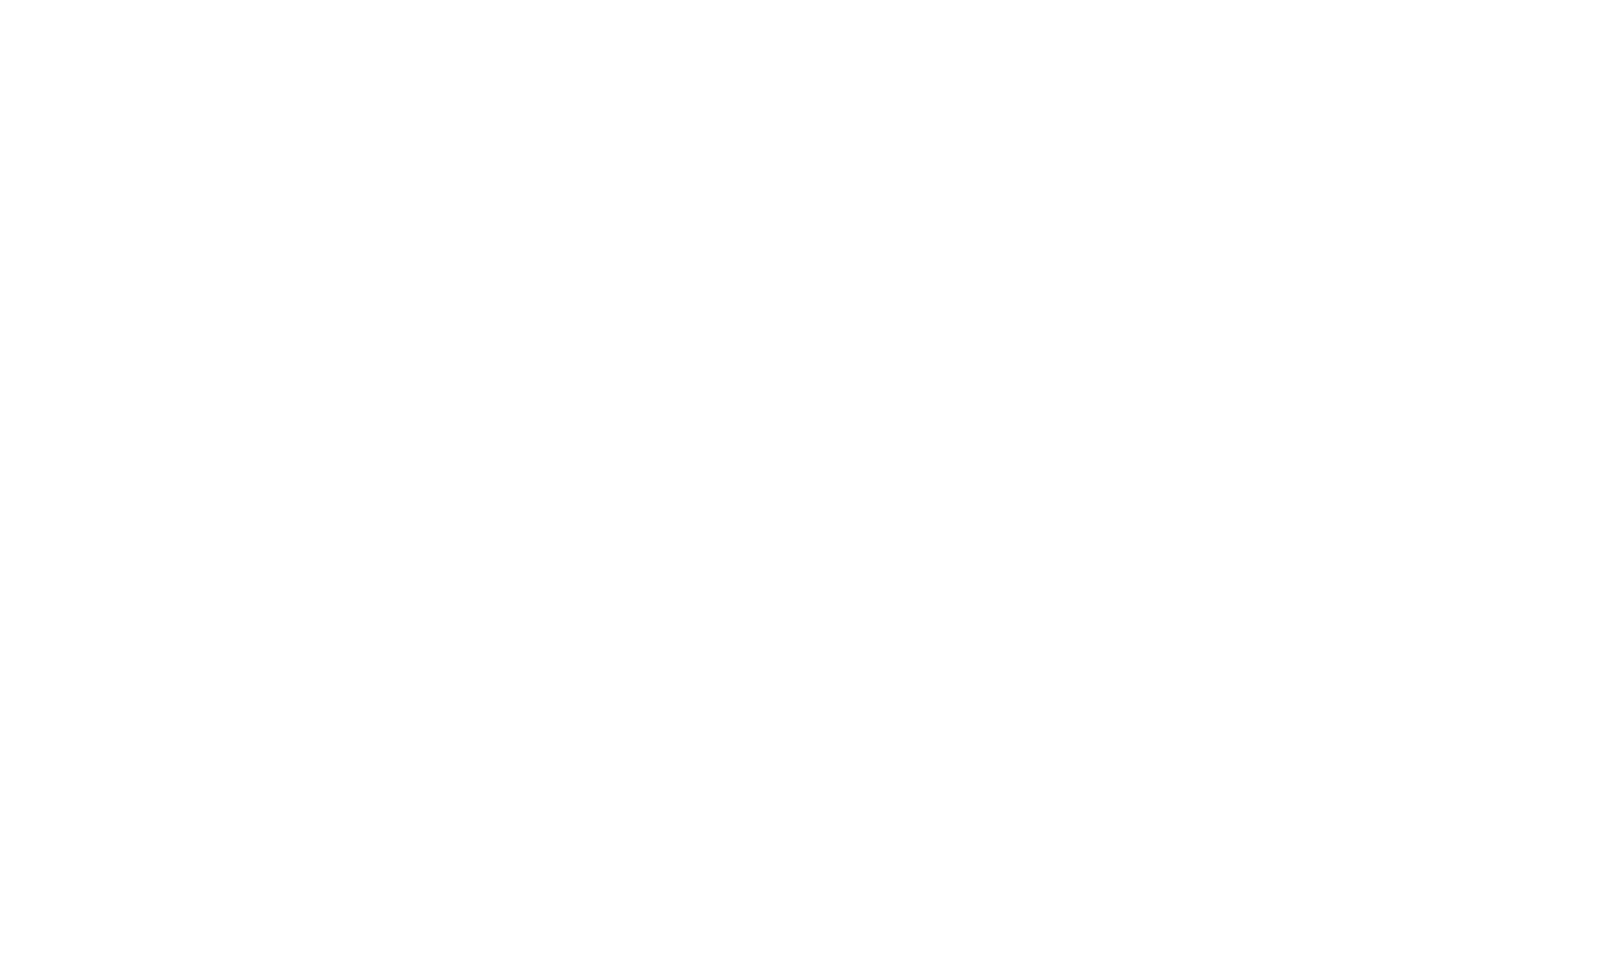 OUTLET PLUS BY ITALIAN CRAZY